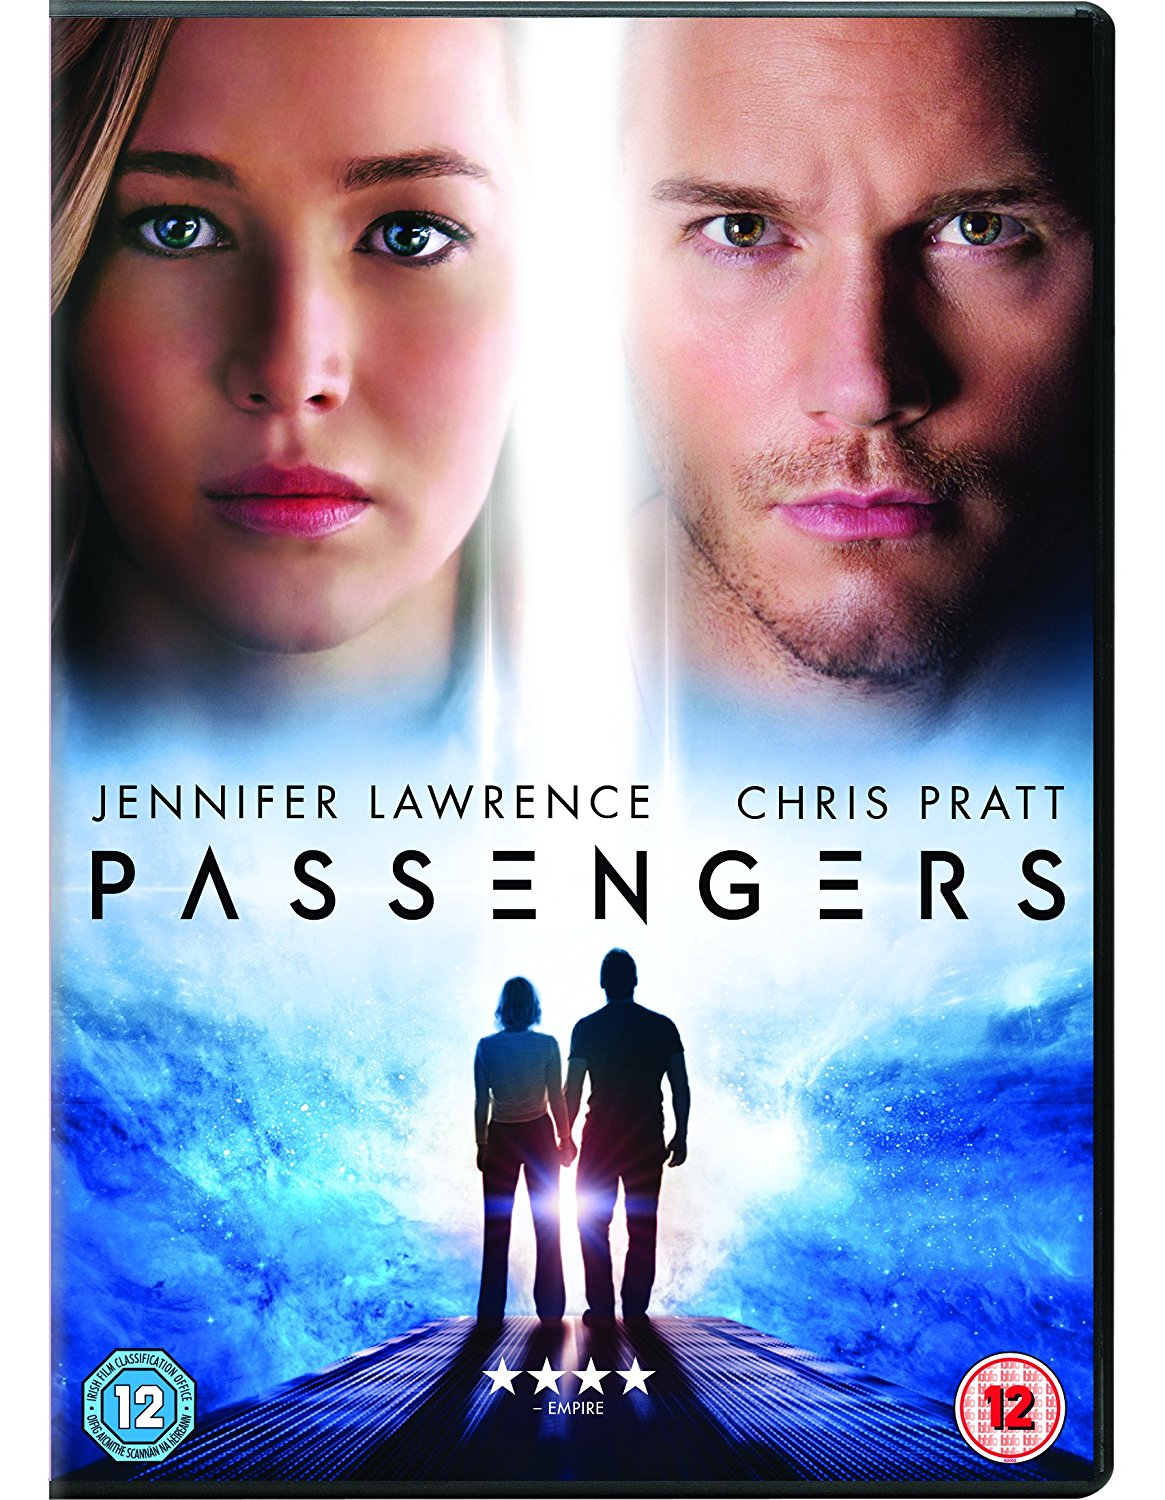 �passengers� review � a film of confused genres pissed